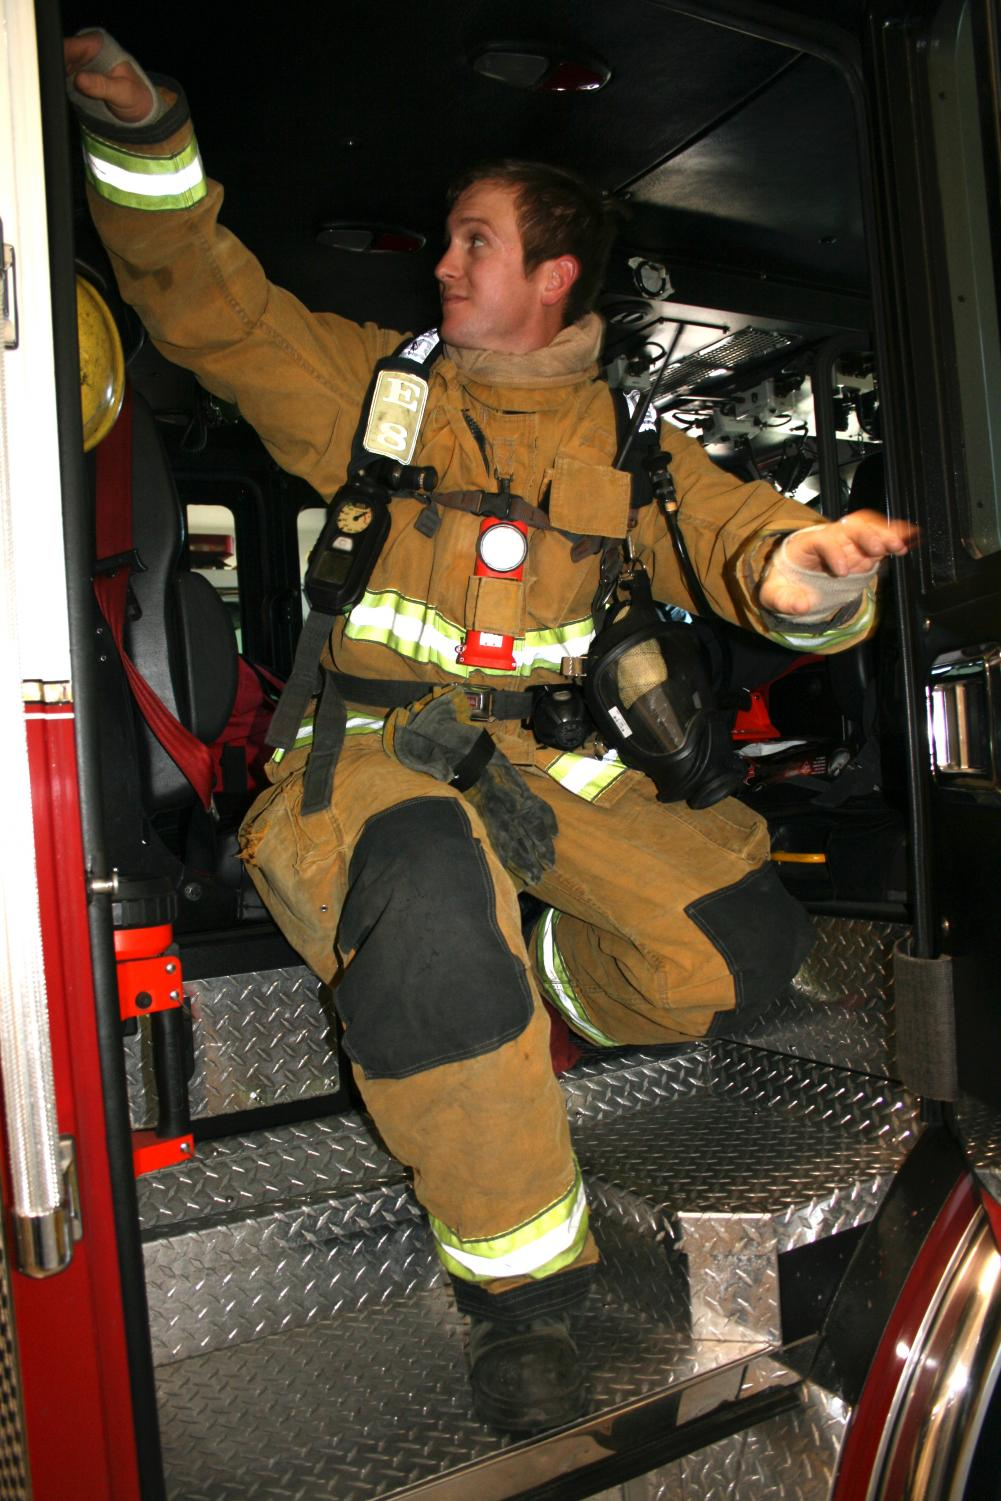 Firefighter Bill Ballard climbs out of a fire engine after demonstrating the routine of responding to a fire call.